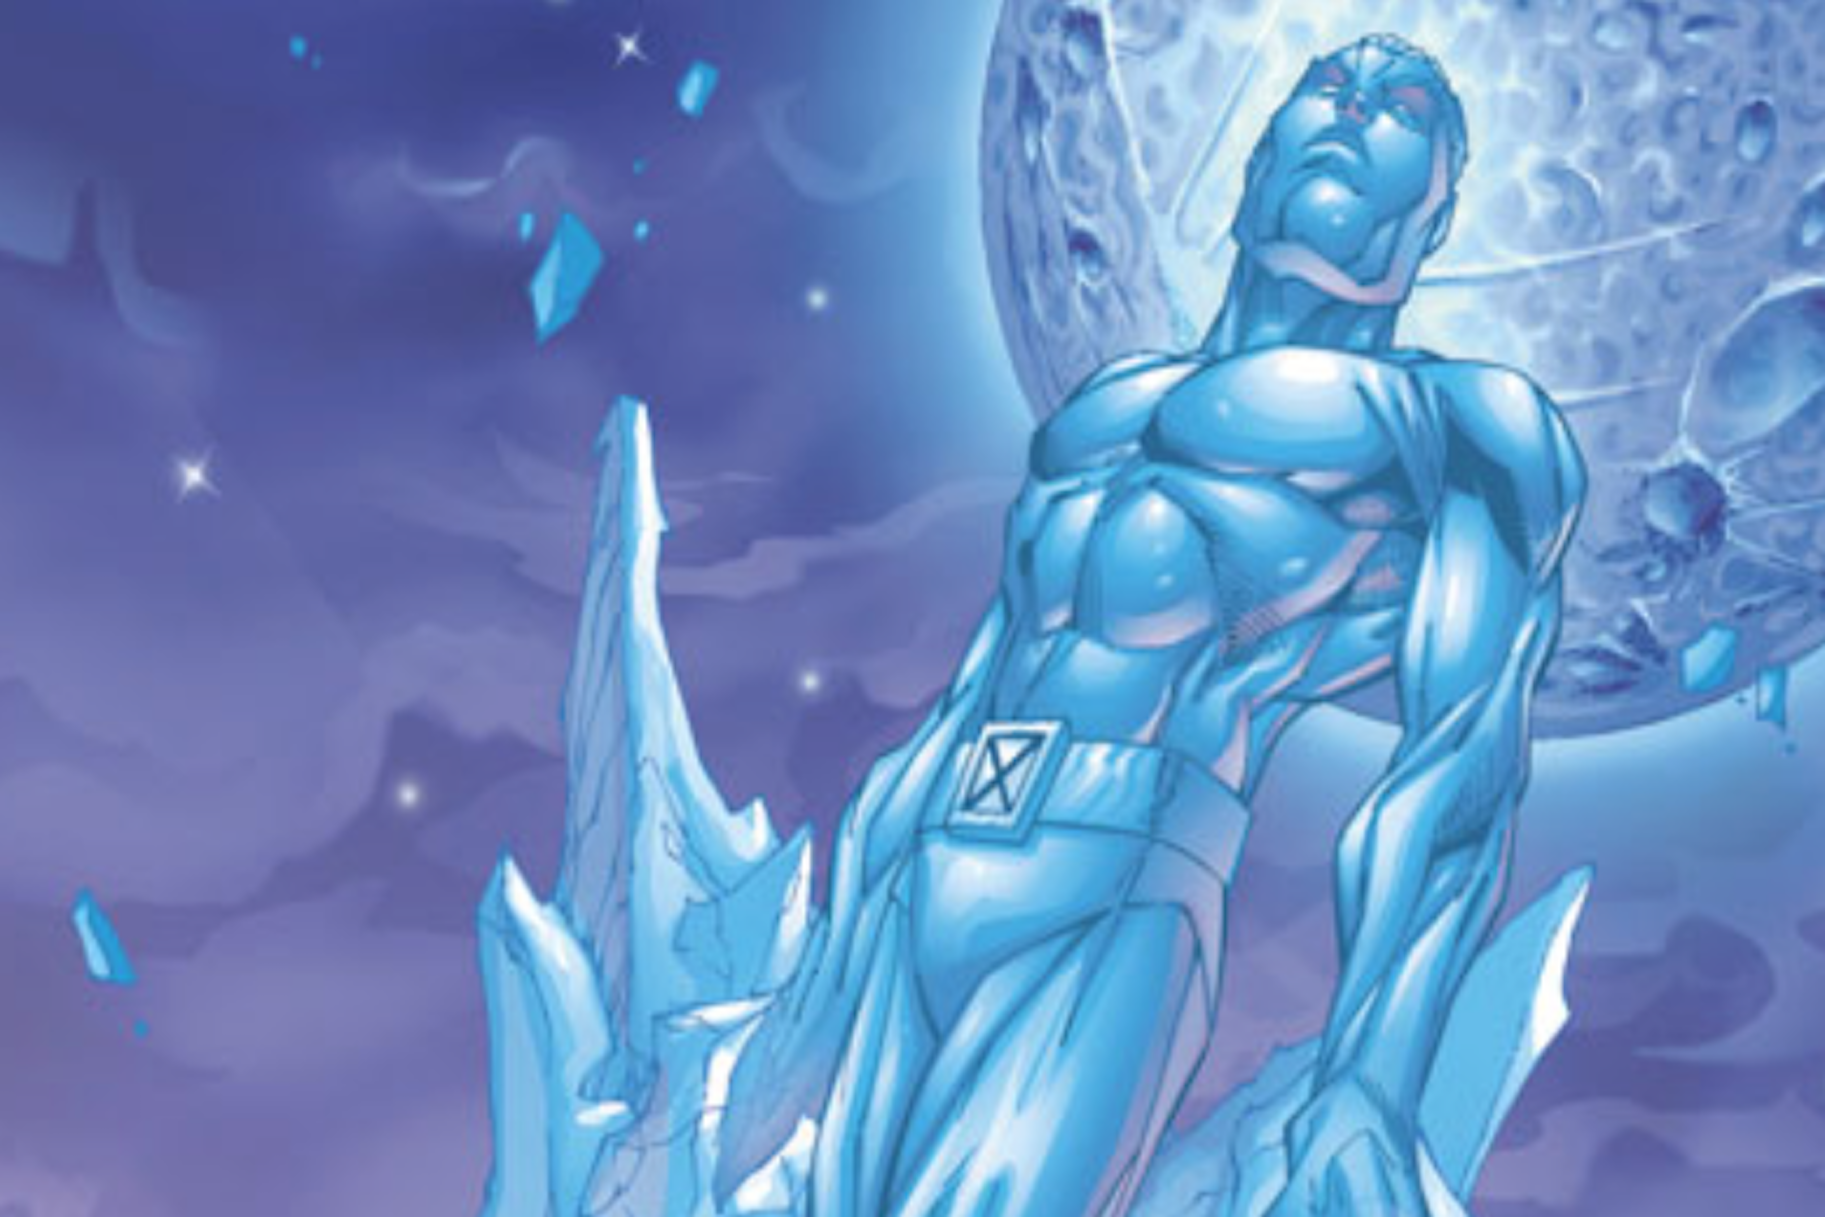 Image from Marvel Comics